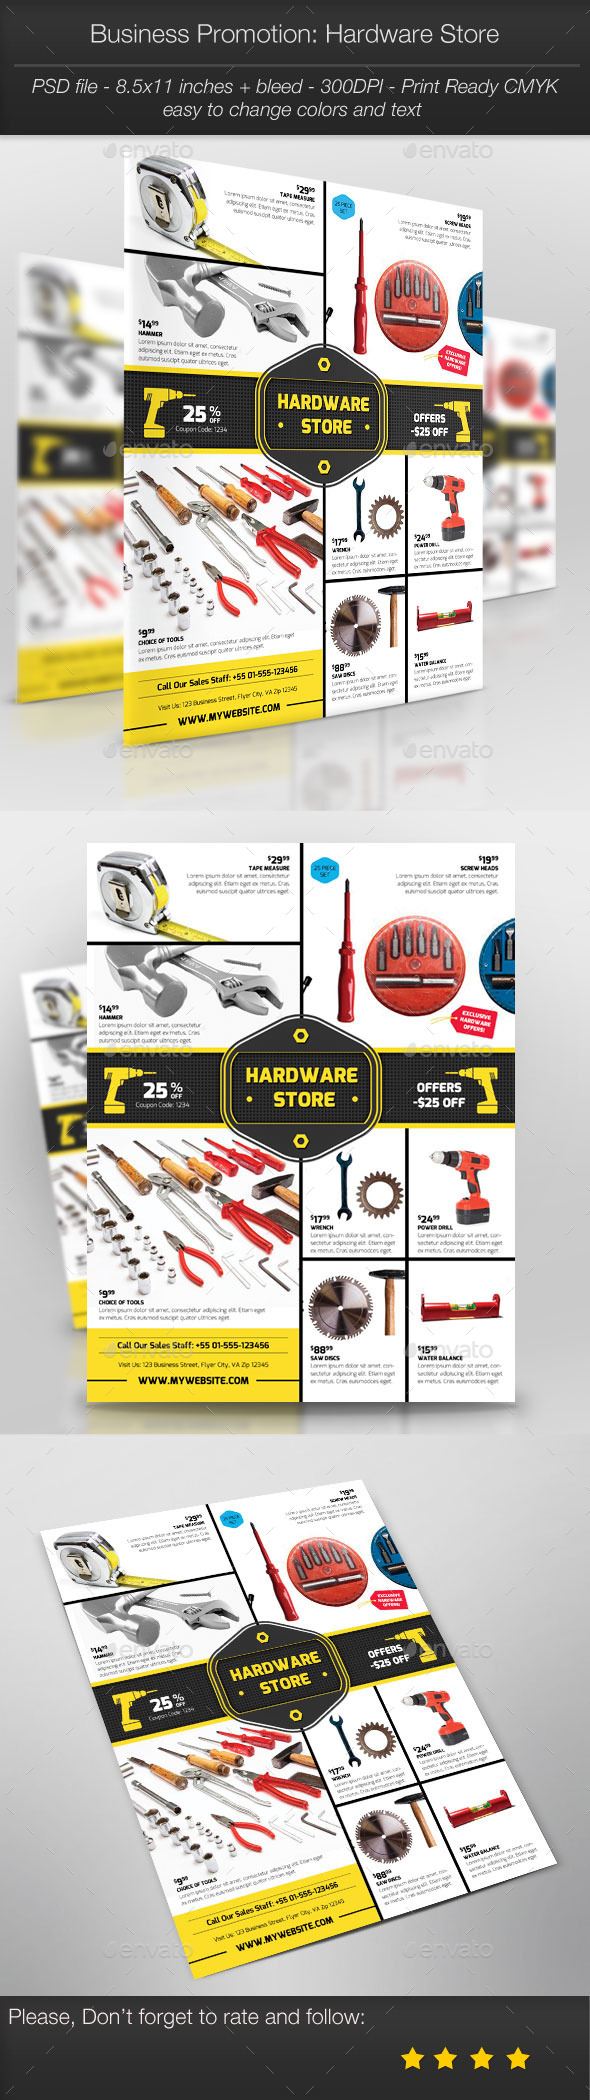 GraphicRiver Business Promotion Hardware Store 10760691